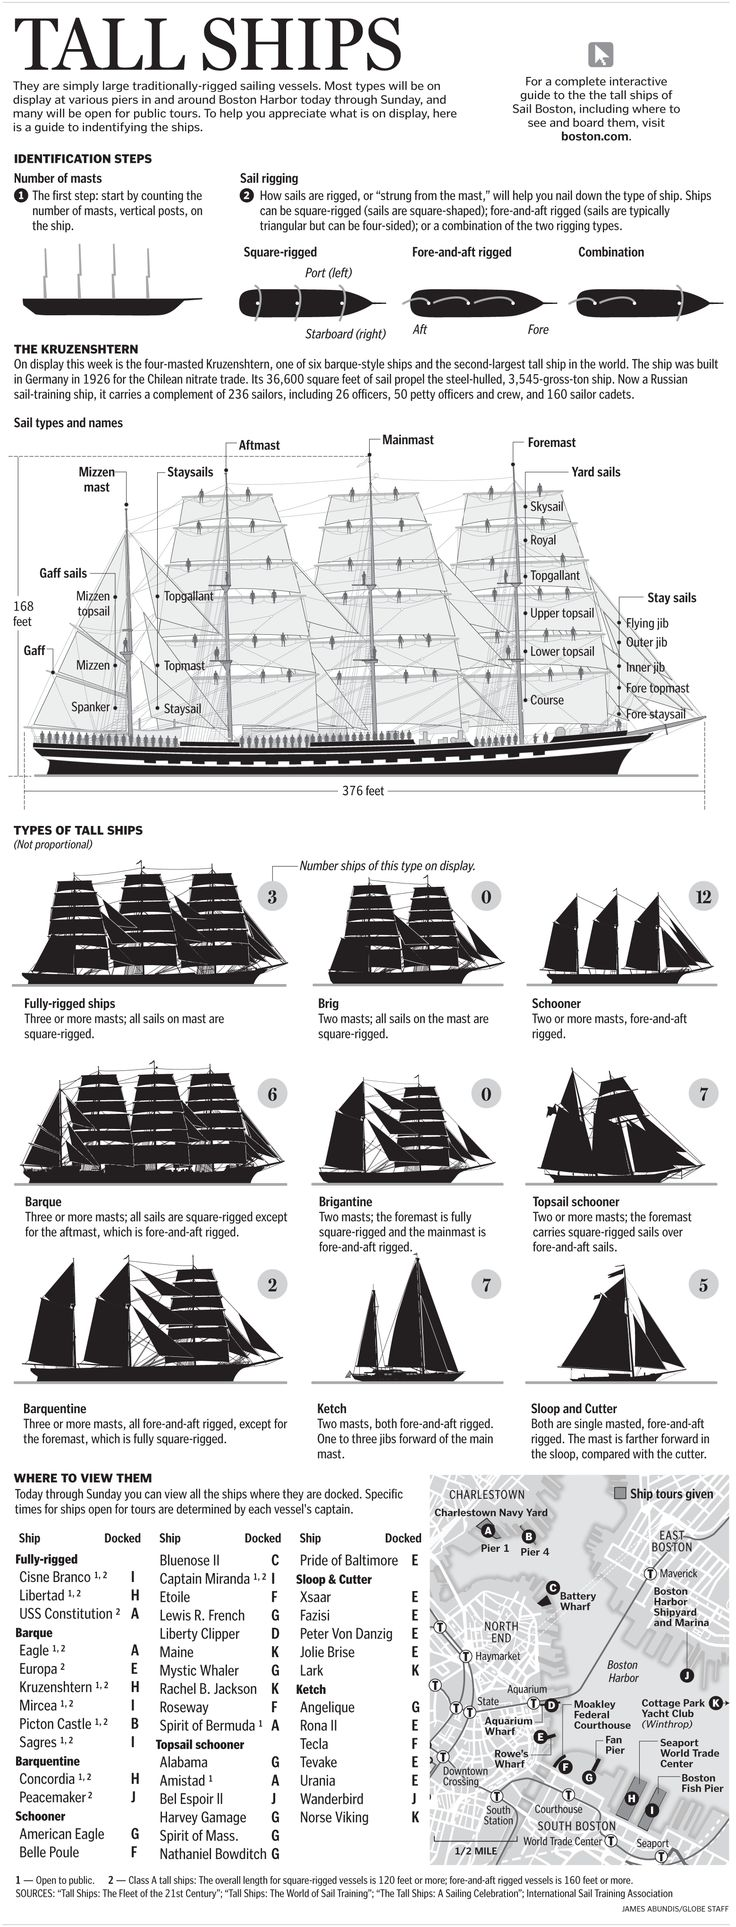 Tall Ships was basically a viewer's guide to help them identify the various classes and types of tall ships.